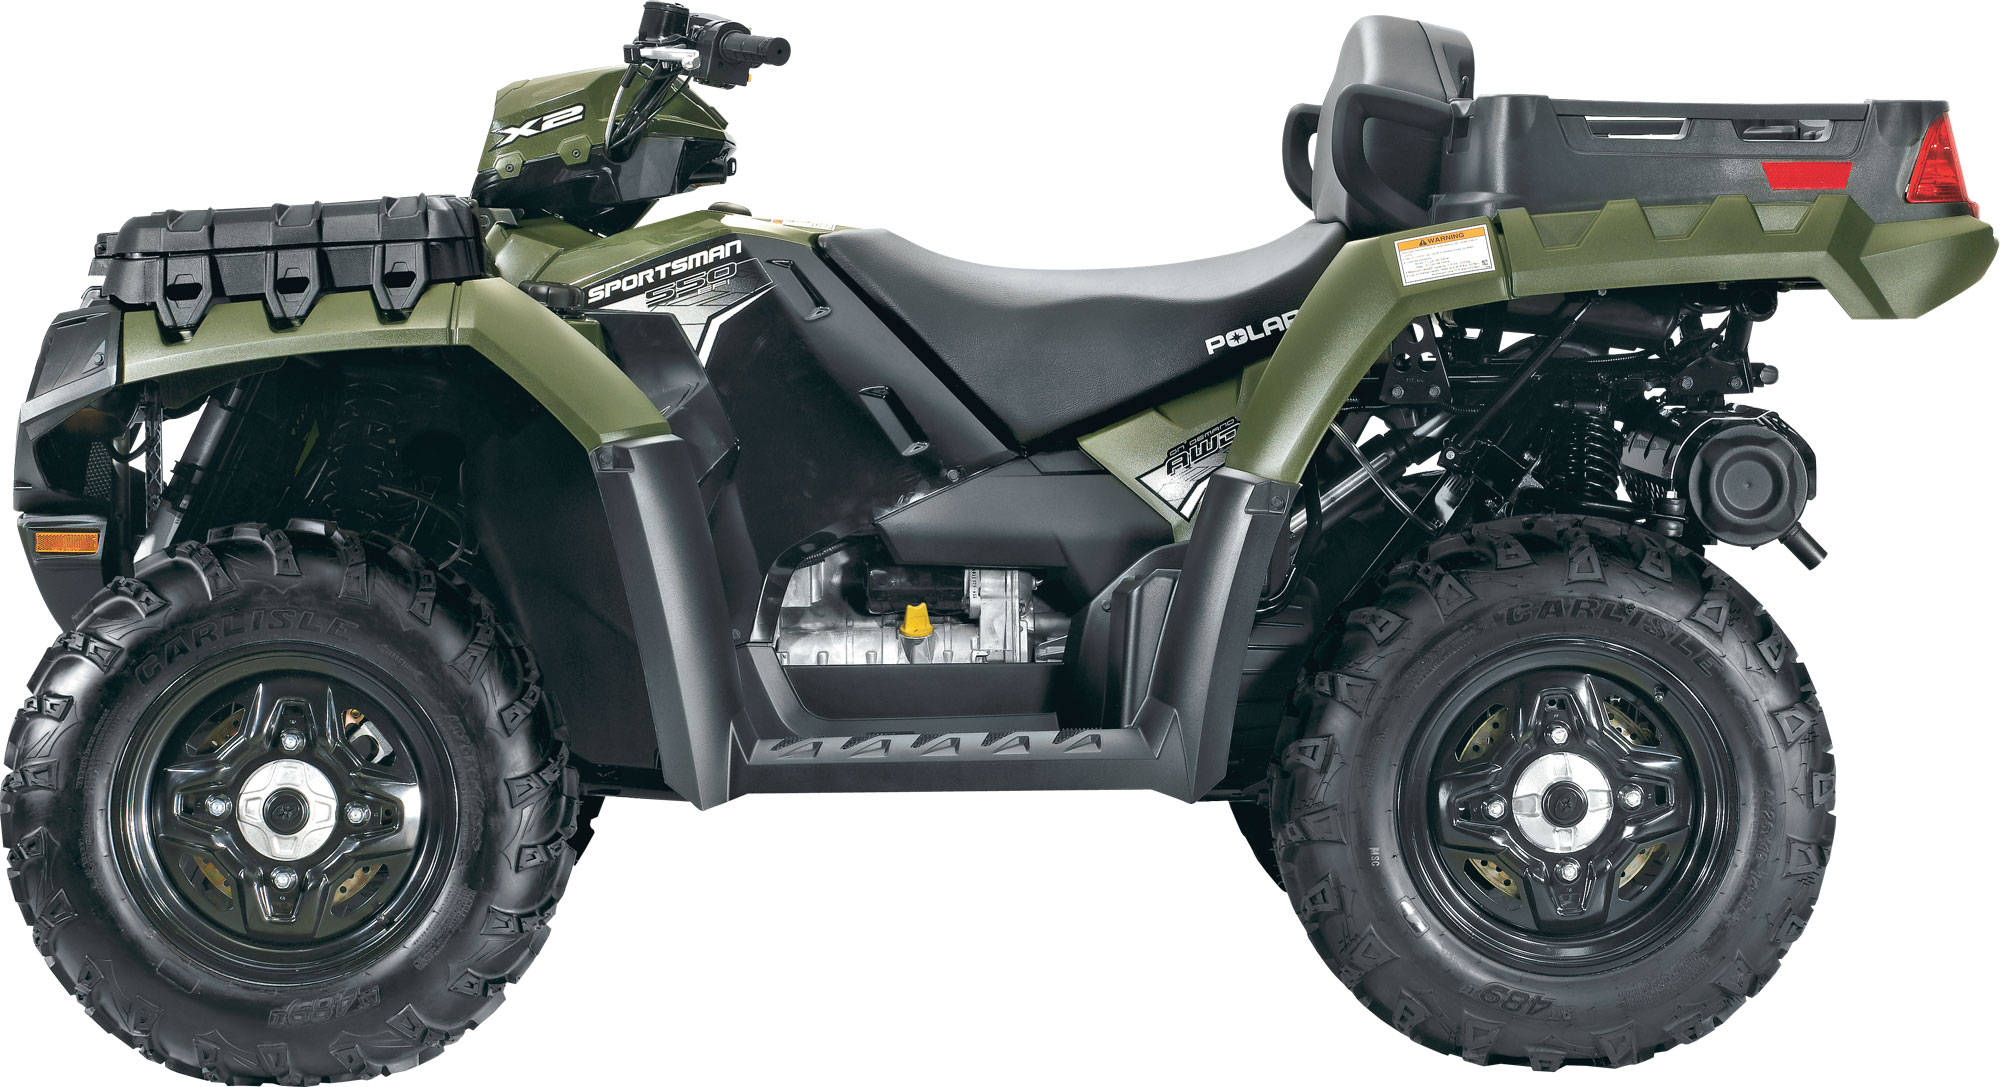 Polaris Sportsman X2 550 Specs - 2011  2012